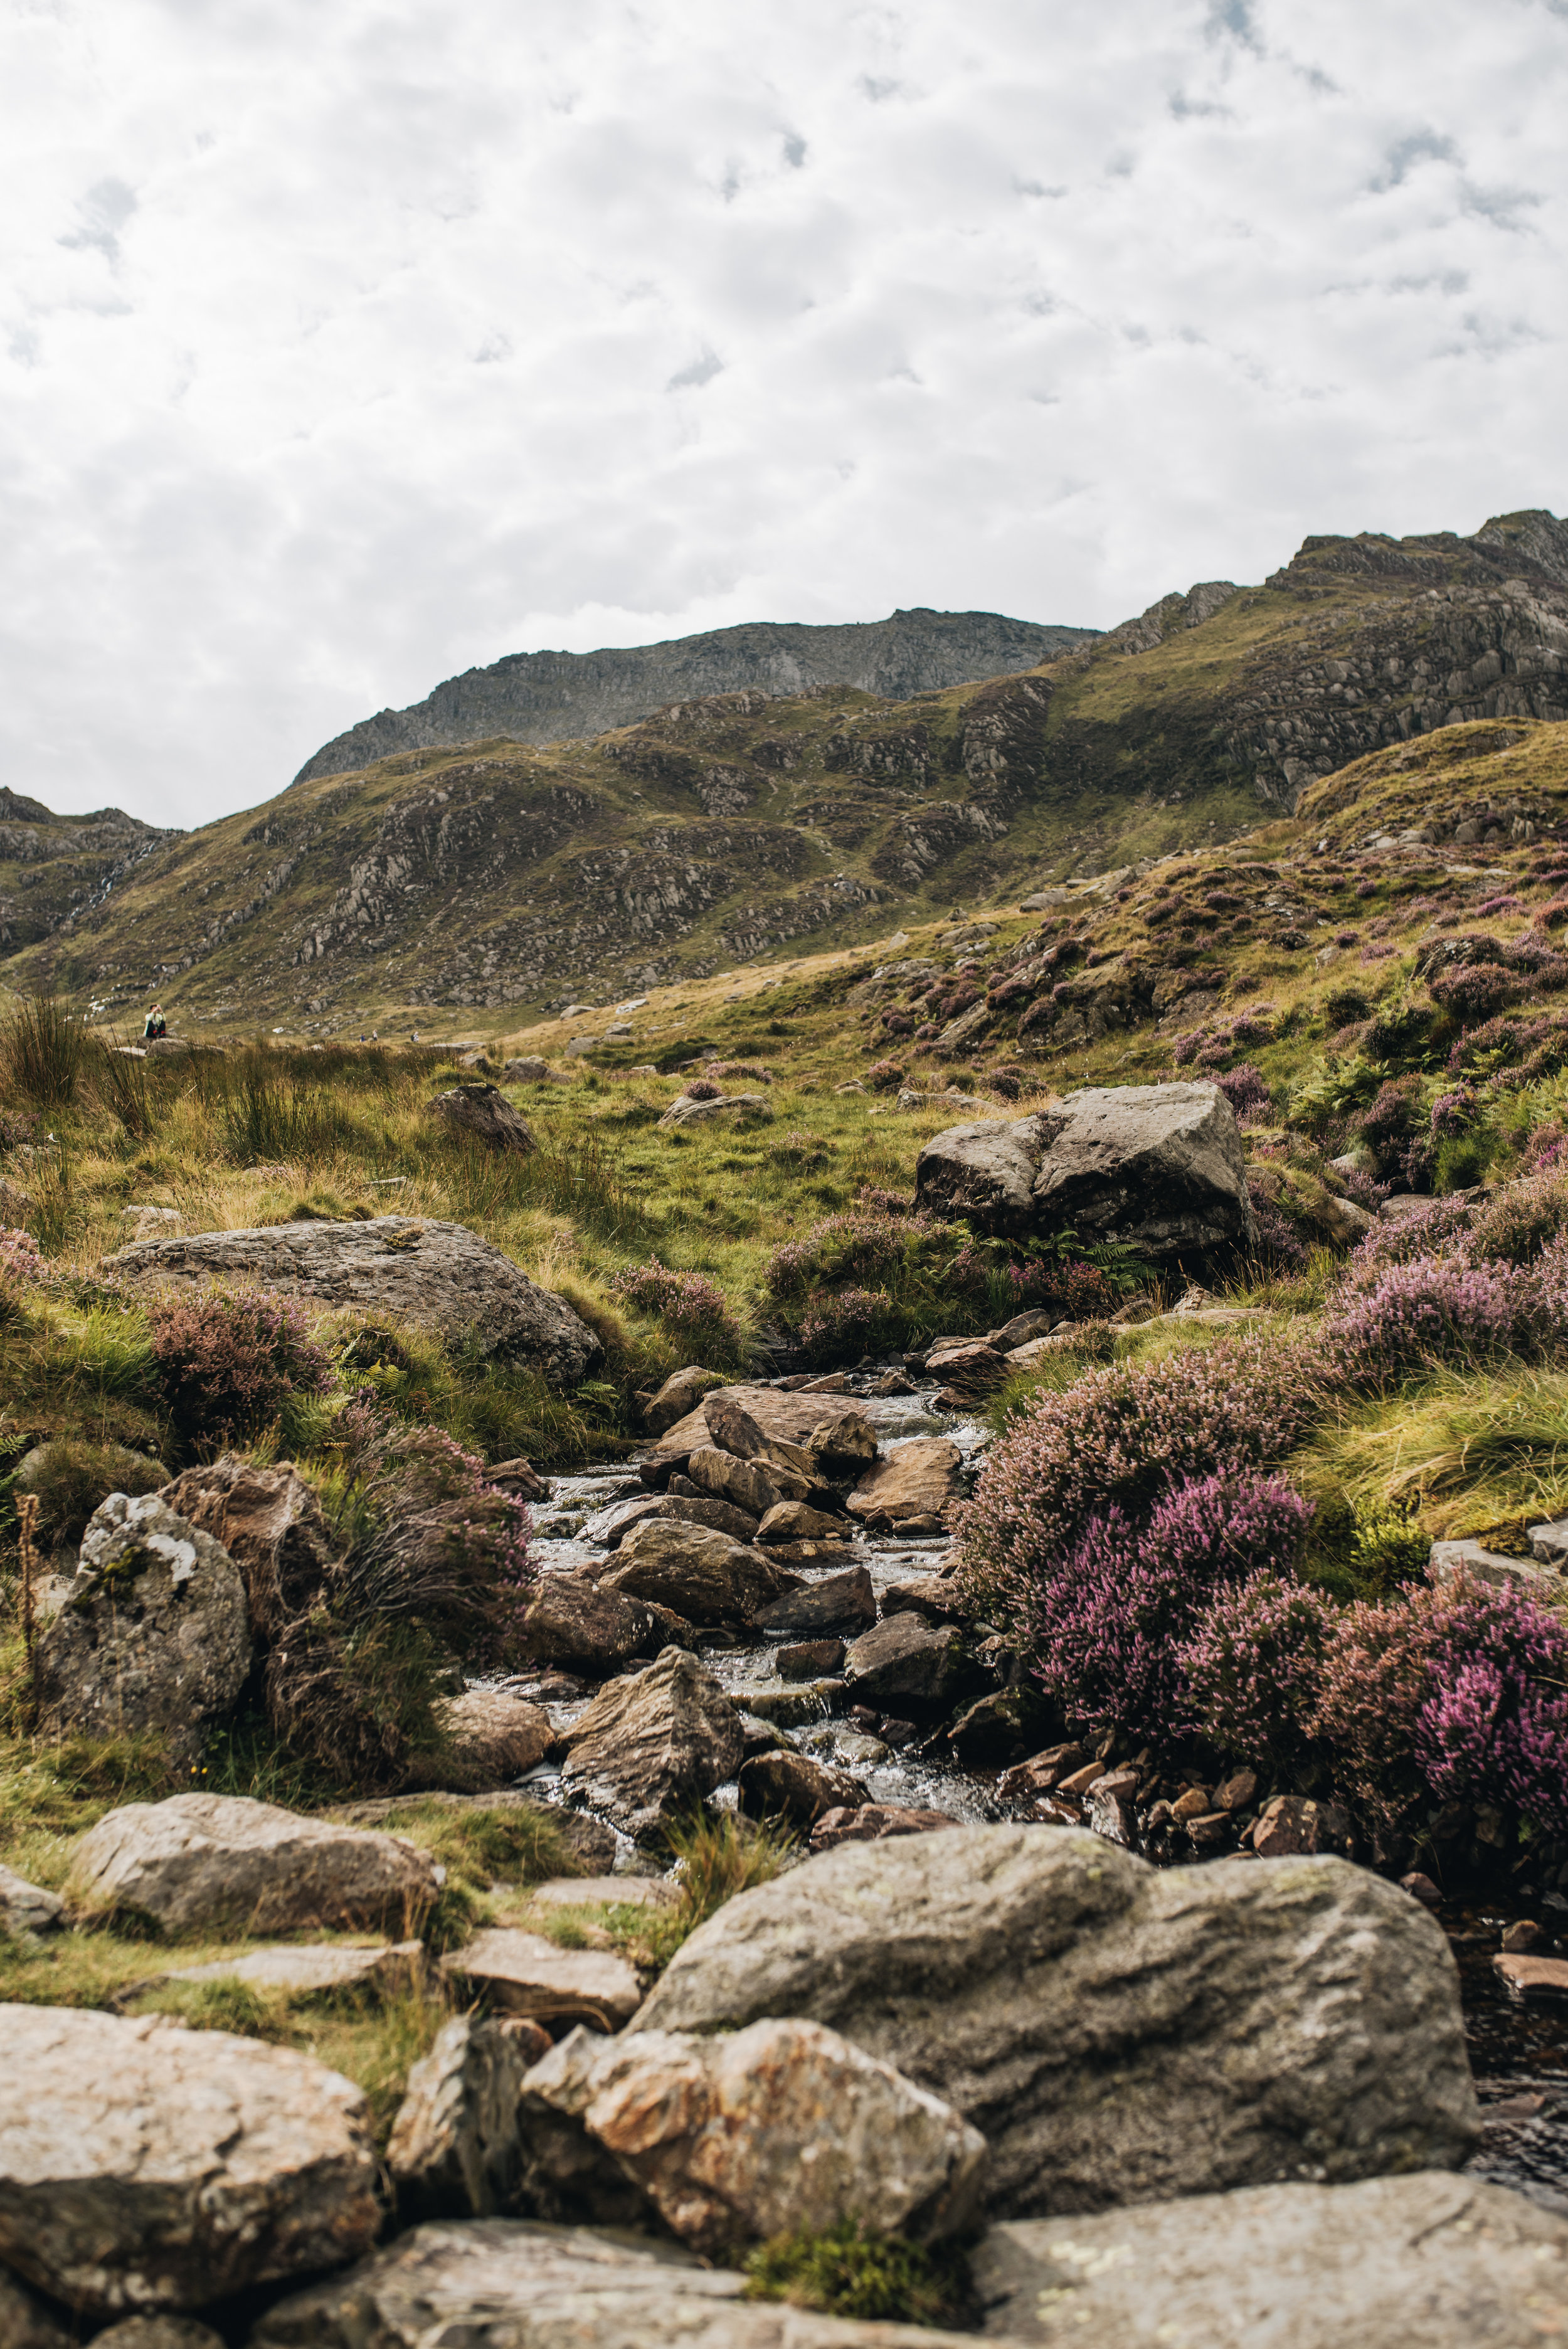 A holiday in North Wales - Llyn Idwal - Snowdonia